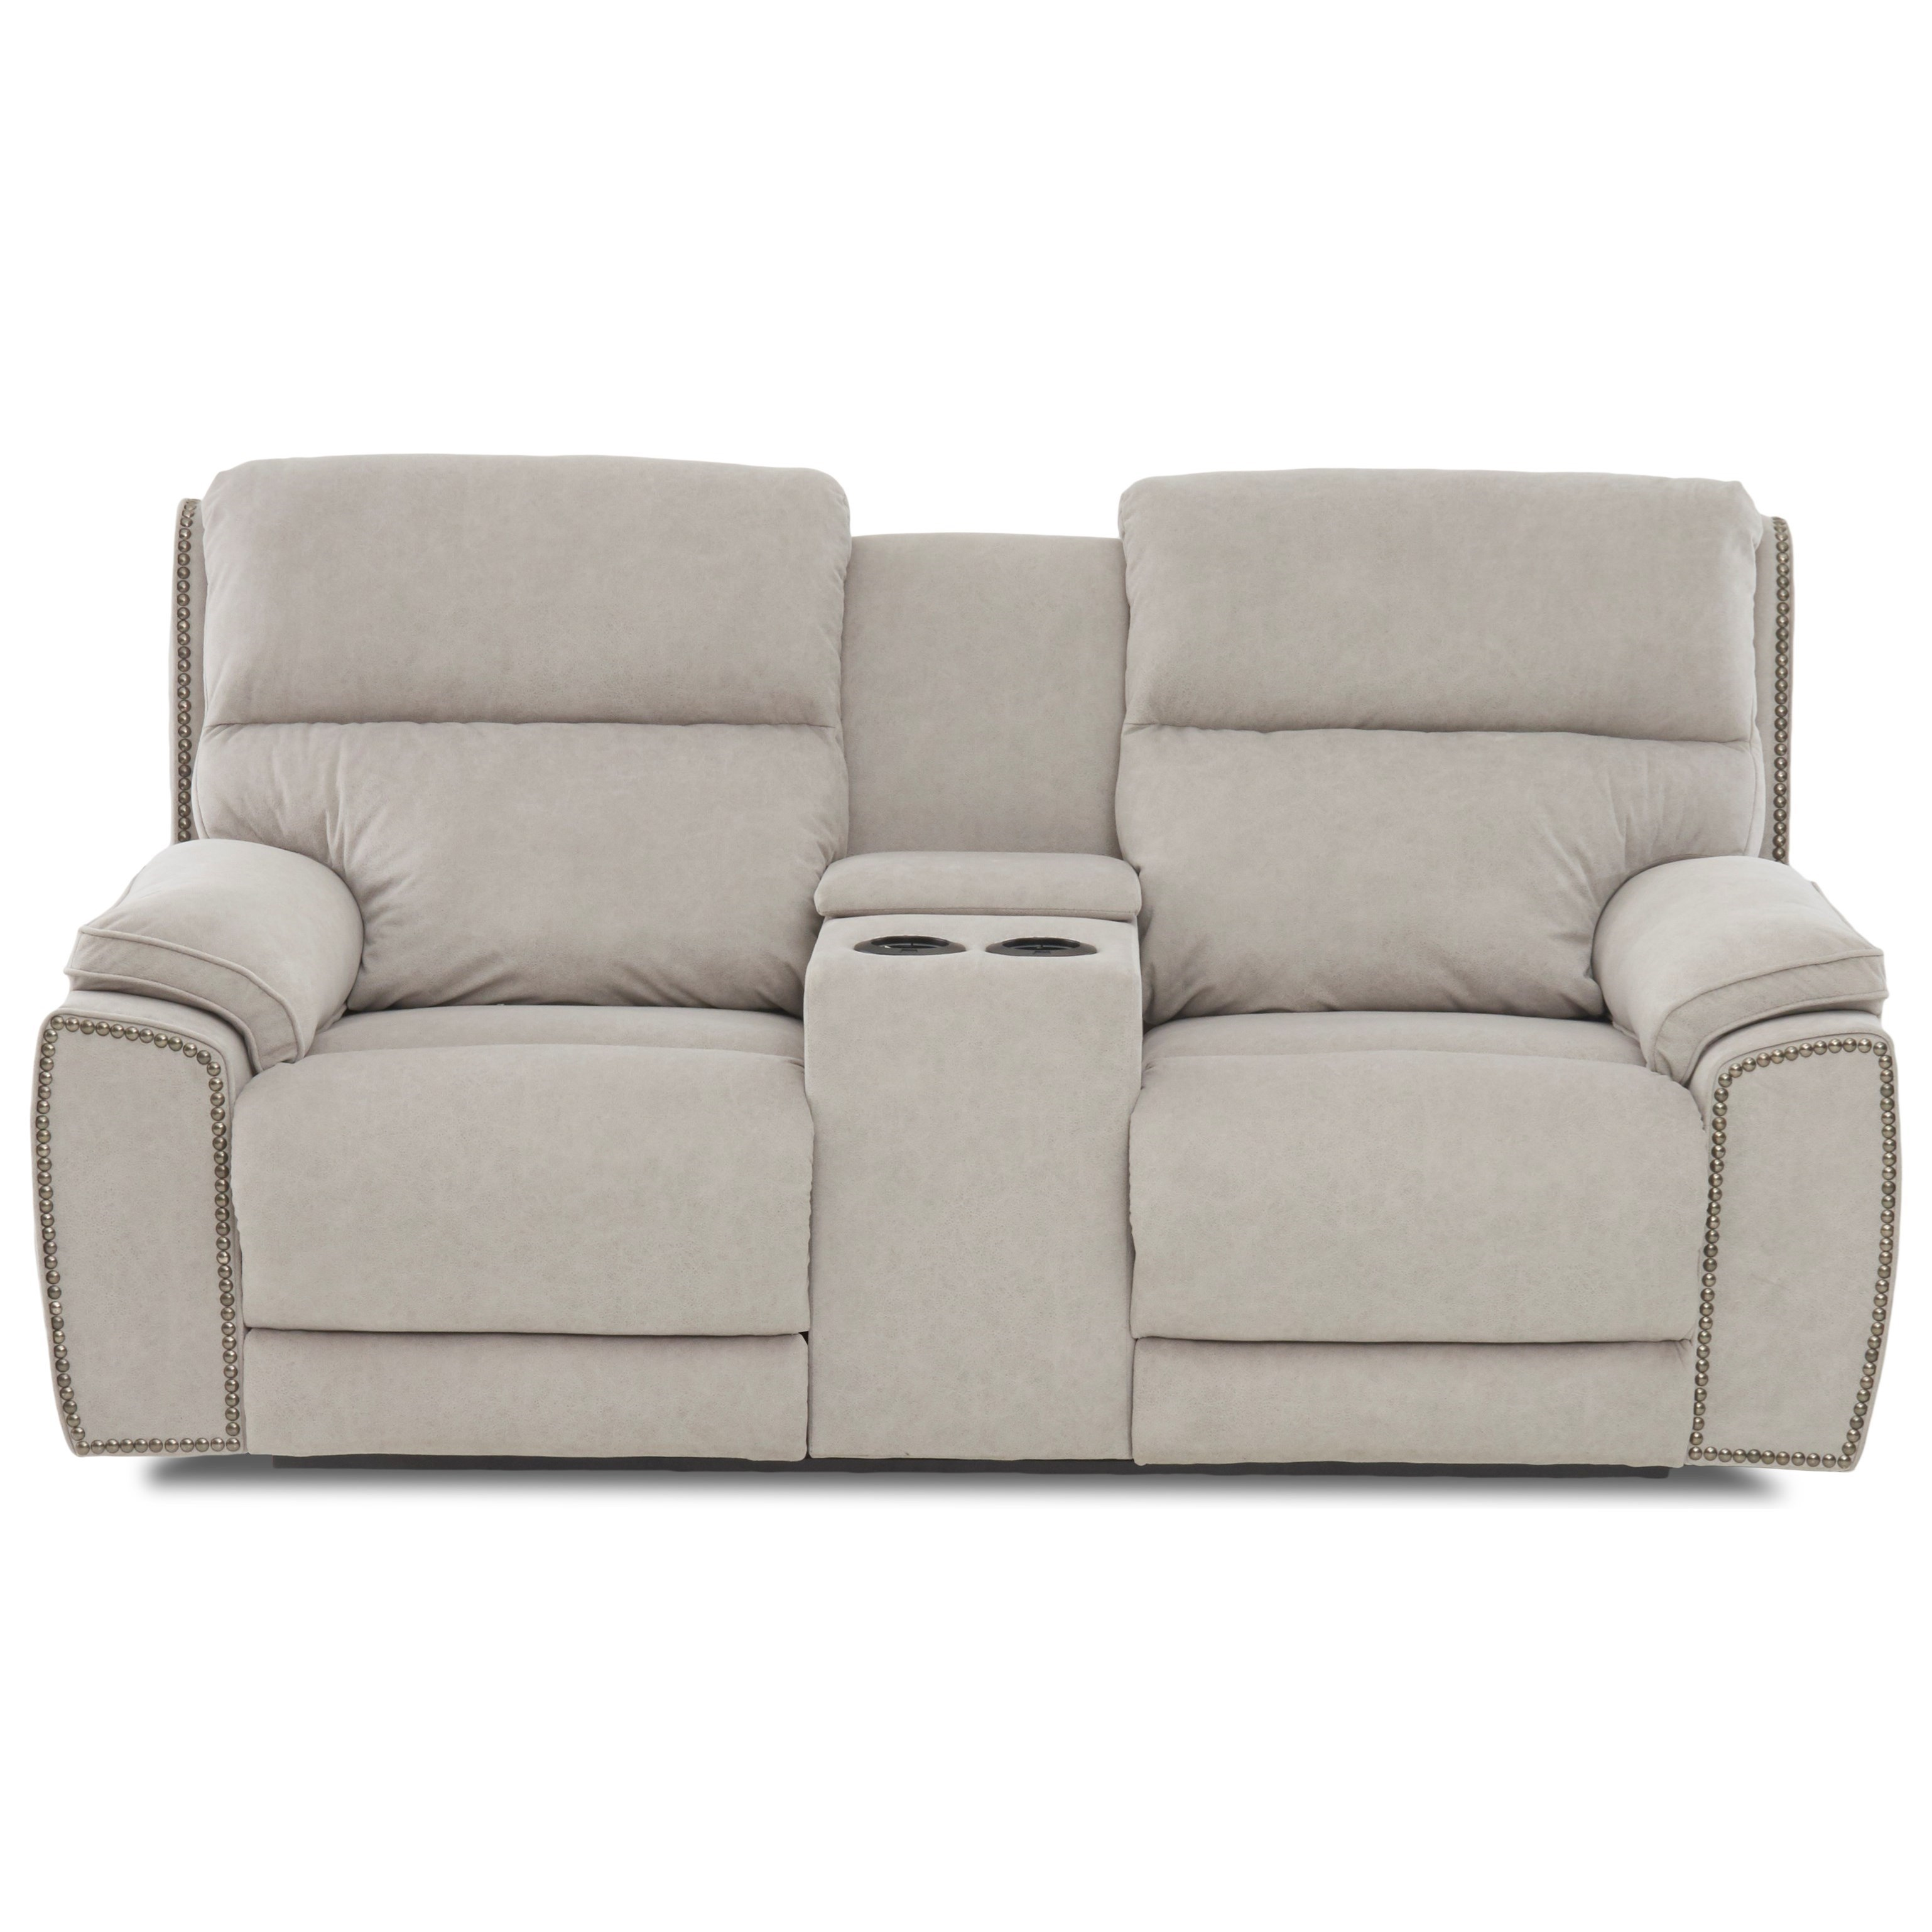 Omaha Power Console Reclining Loveseat w/ Nails by Klaussner at Northeast Factory Direct